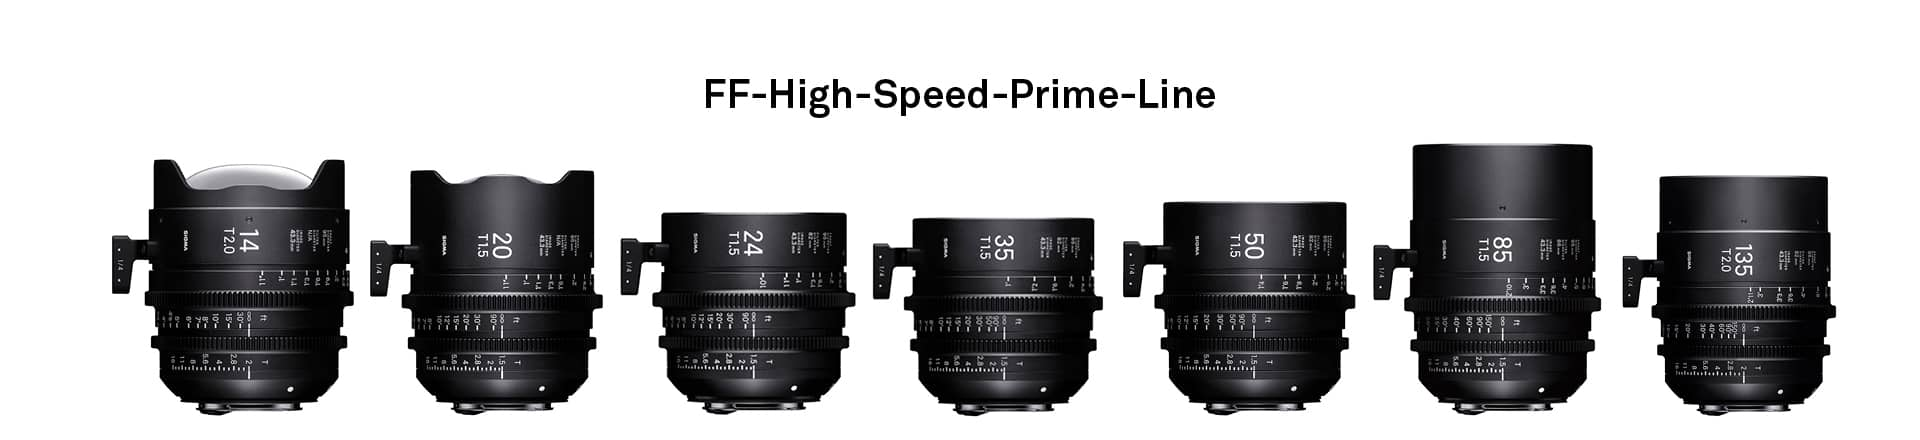 SIGMA FF-High-Speed-Prime-Line